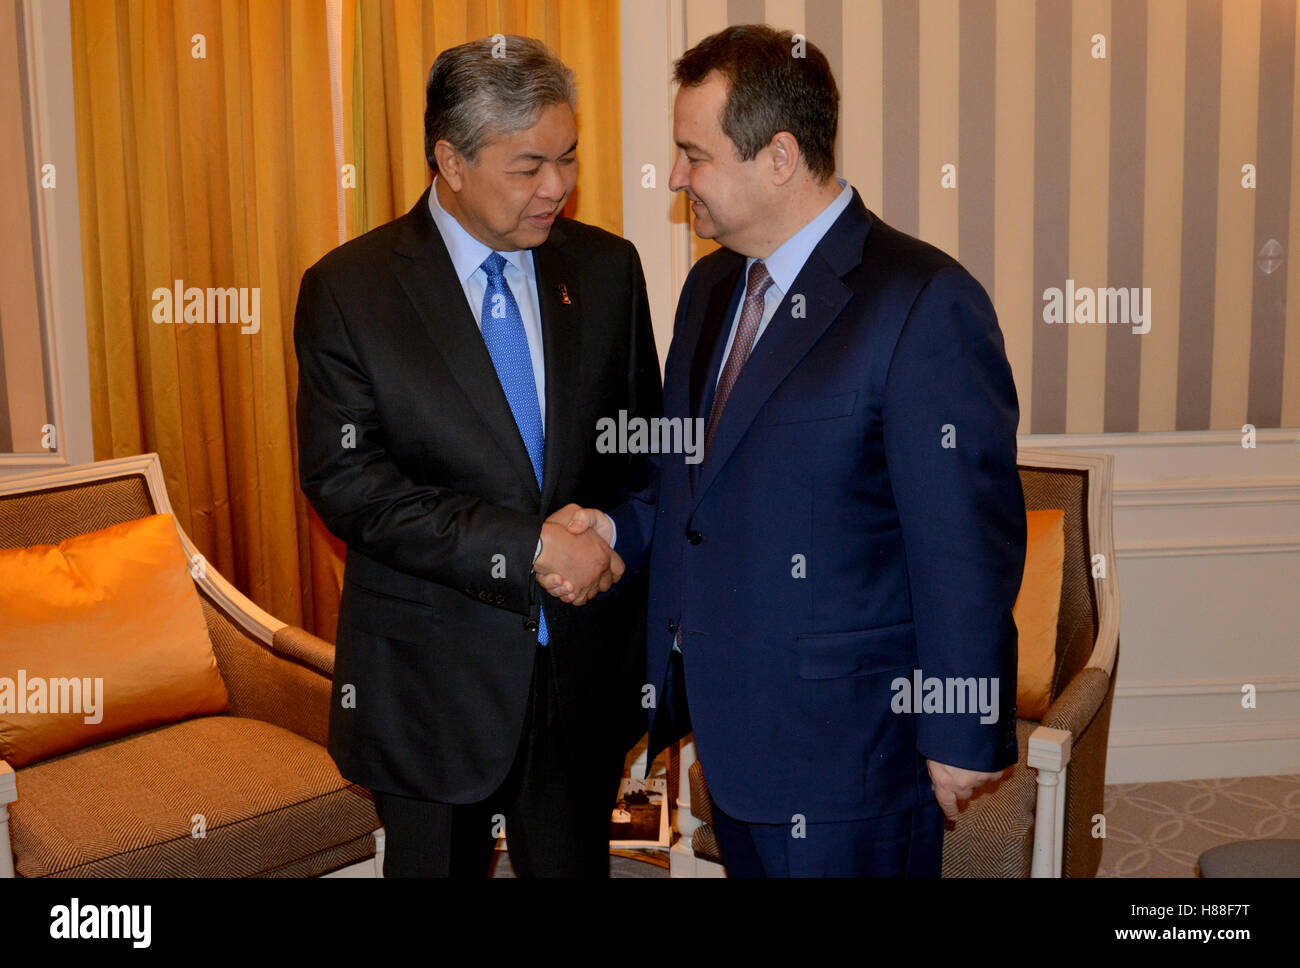 NEW YORK, UNITED STATES - AUGUST 24TH, 2016. Meeting of the minister of Foreign Affairs of Serbia Ivica Dacic and Ahmad Zahid Ha Stock Photo